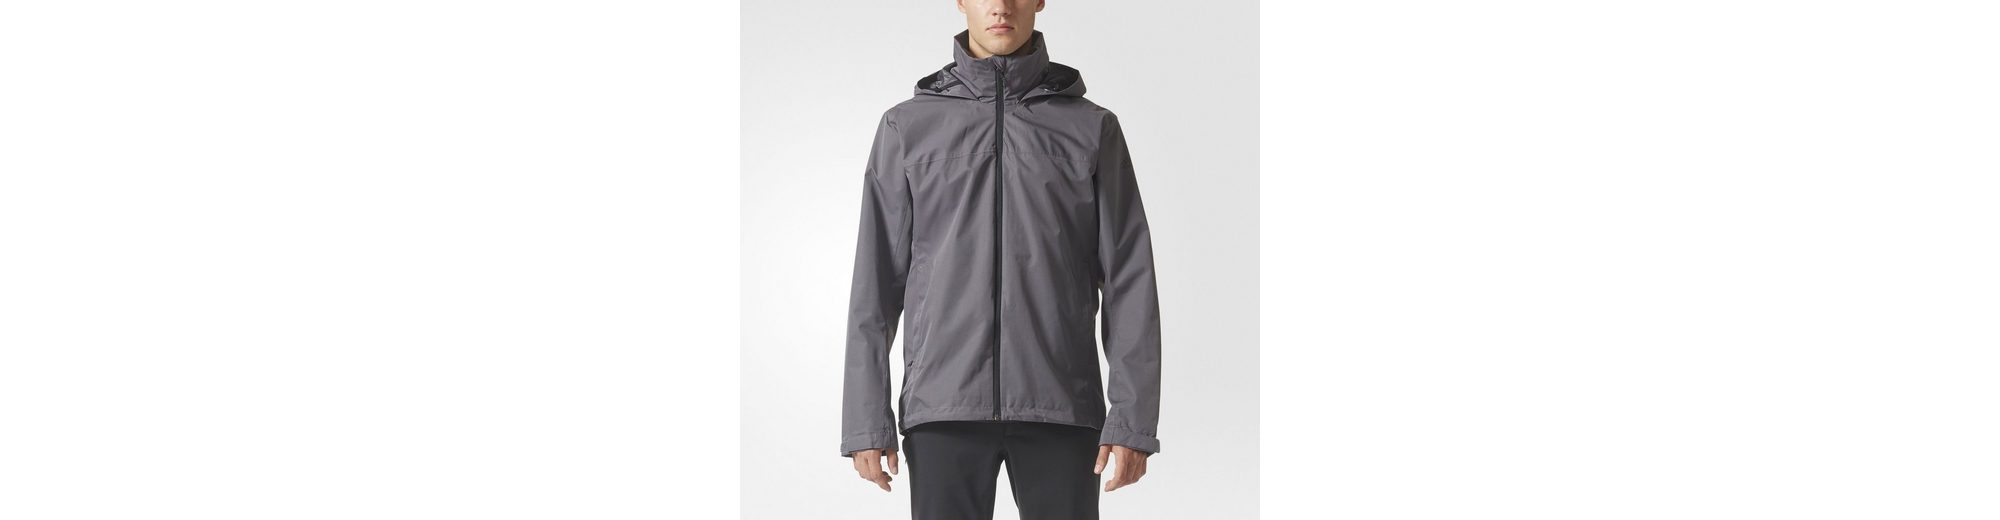 adidas Performance Funktionsjacke Wandertag Solid Colorway